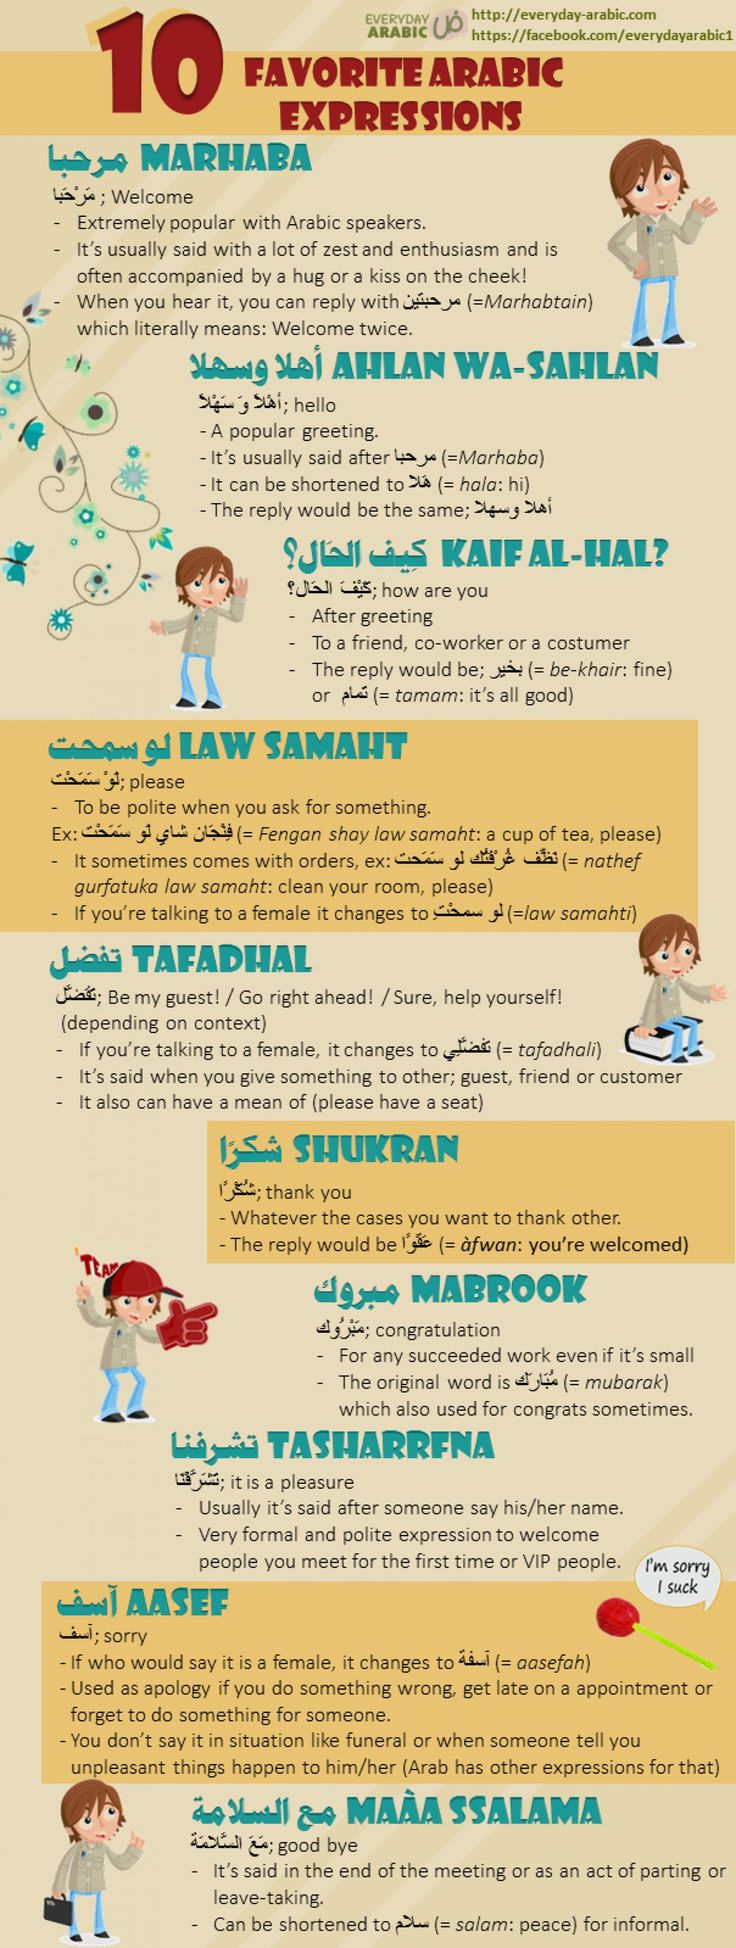 10 Favorite Arabic Expressions Infographic